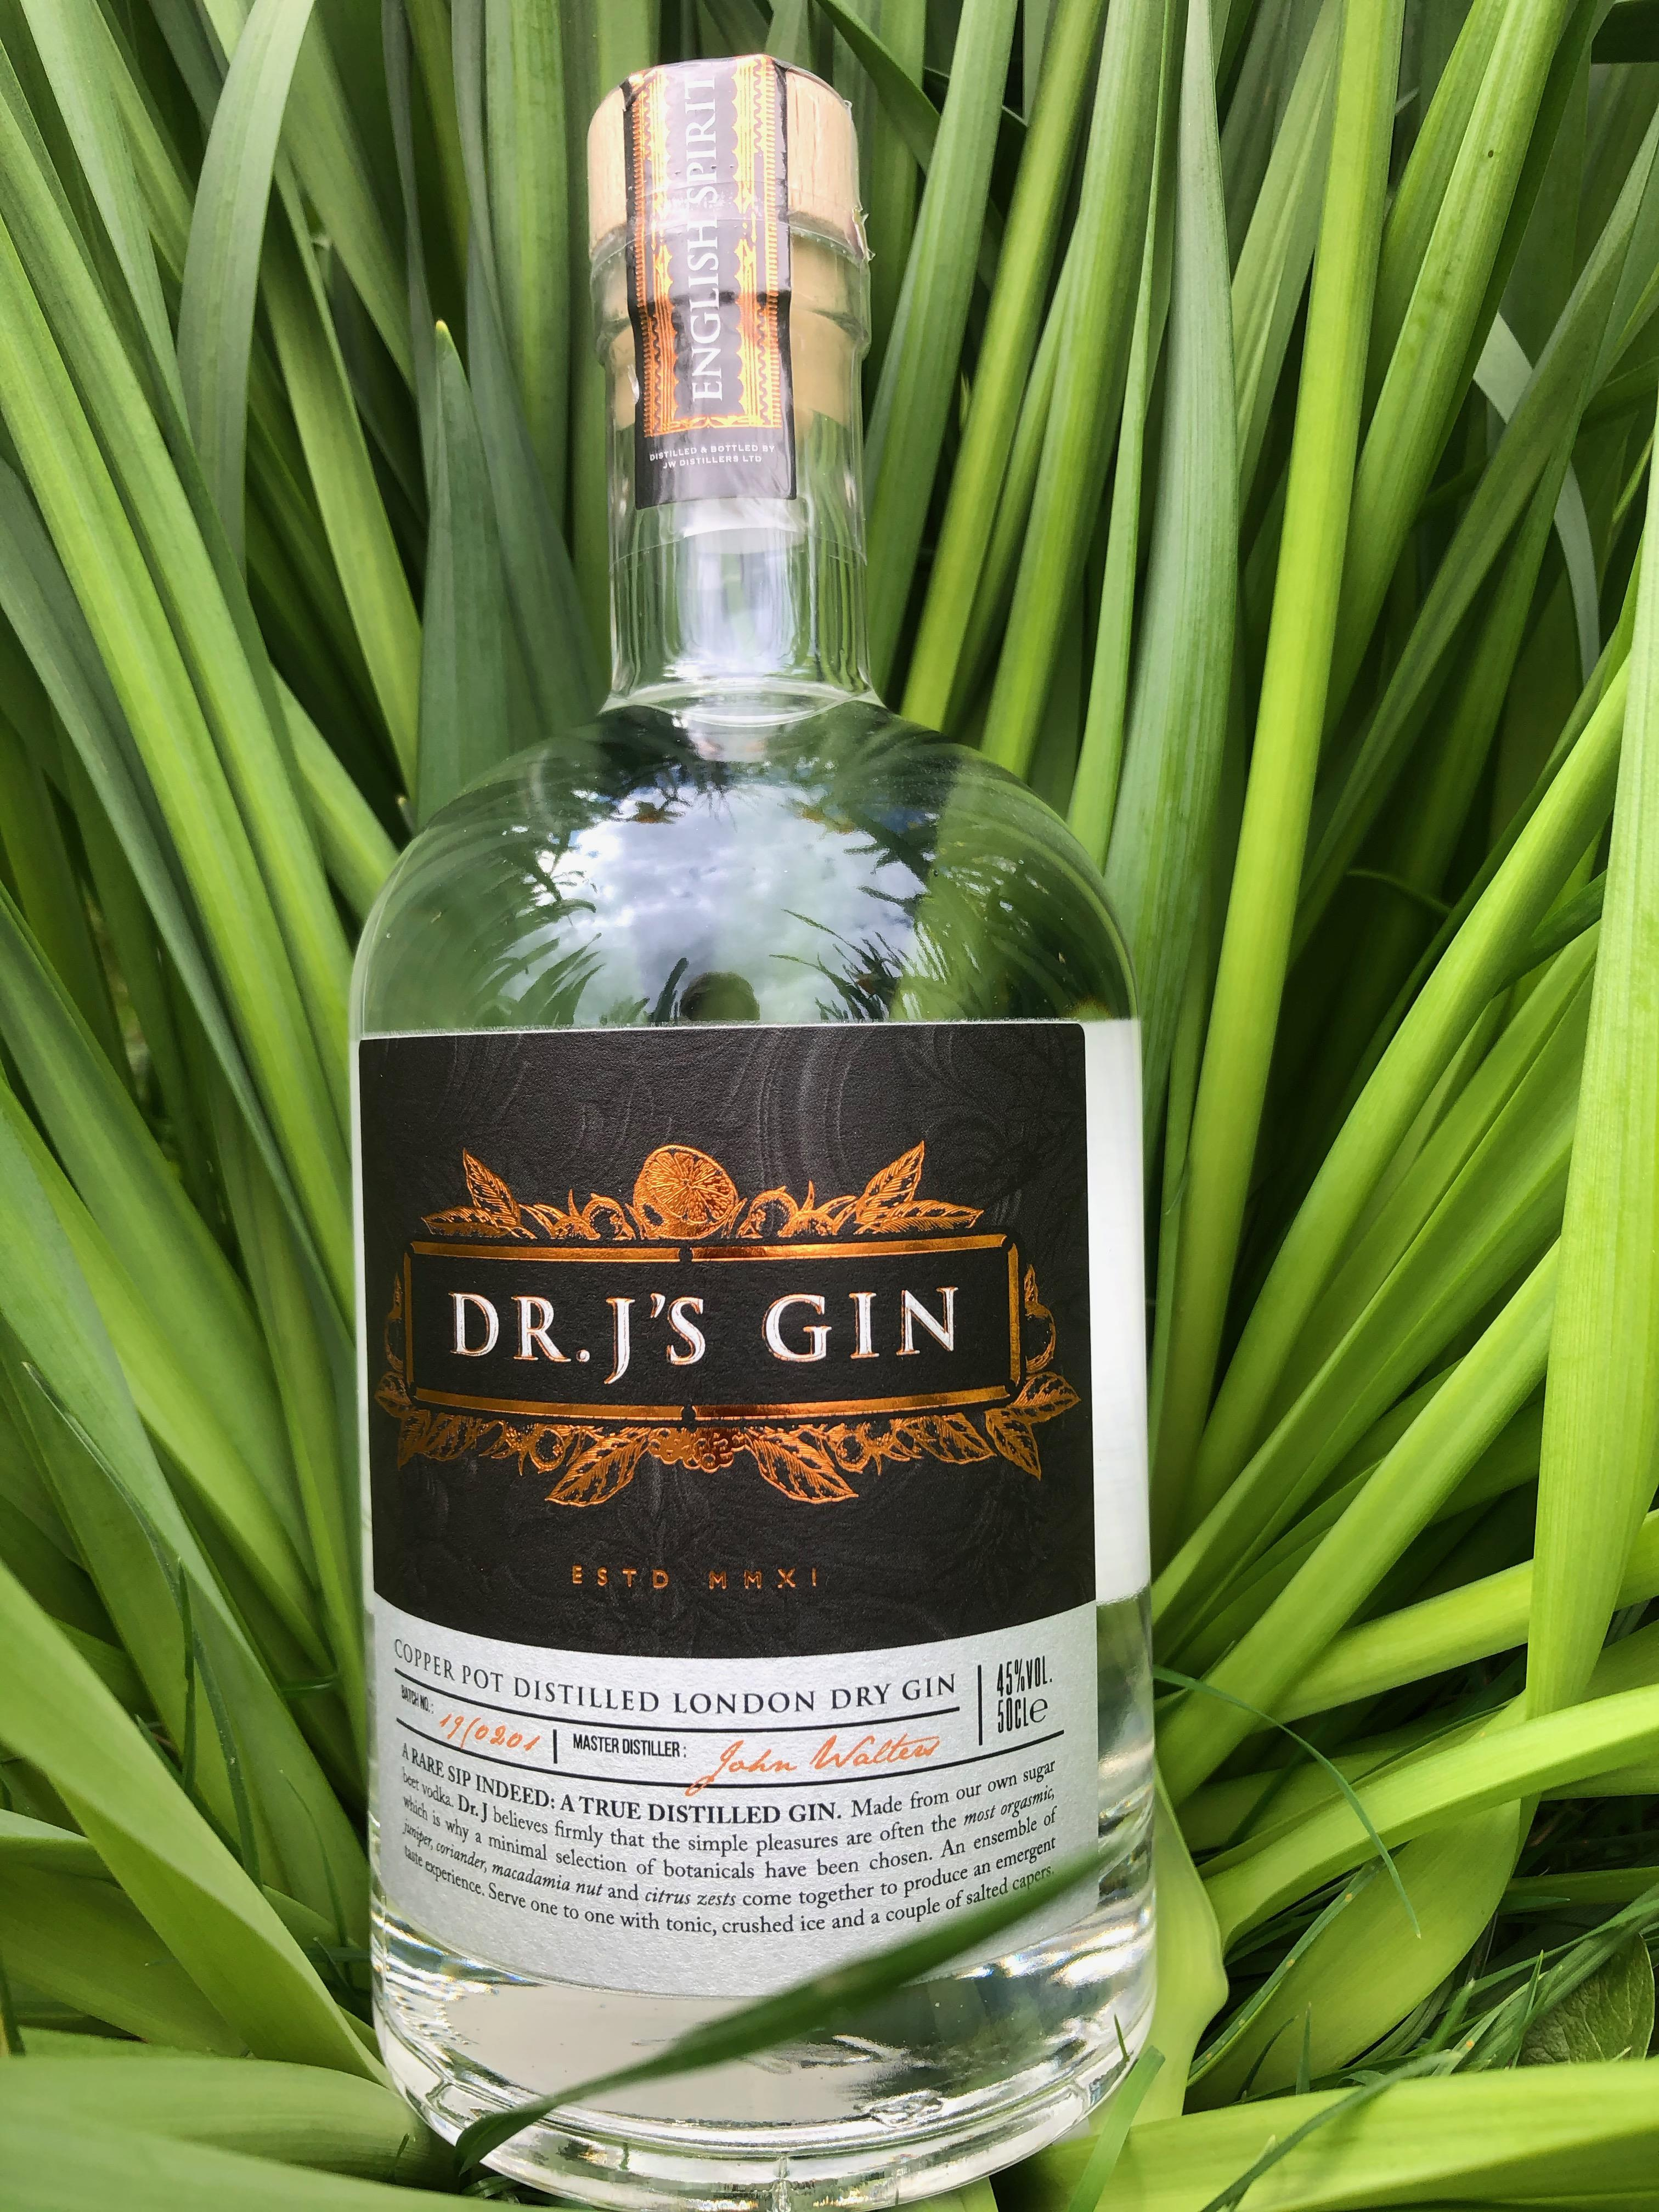 Dr J's gin